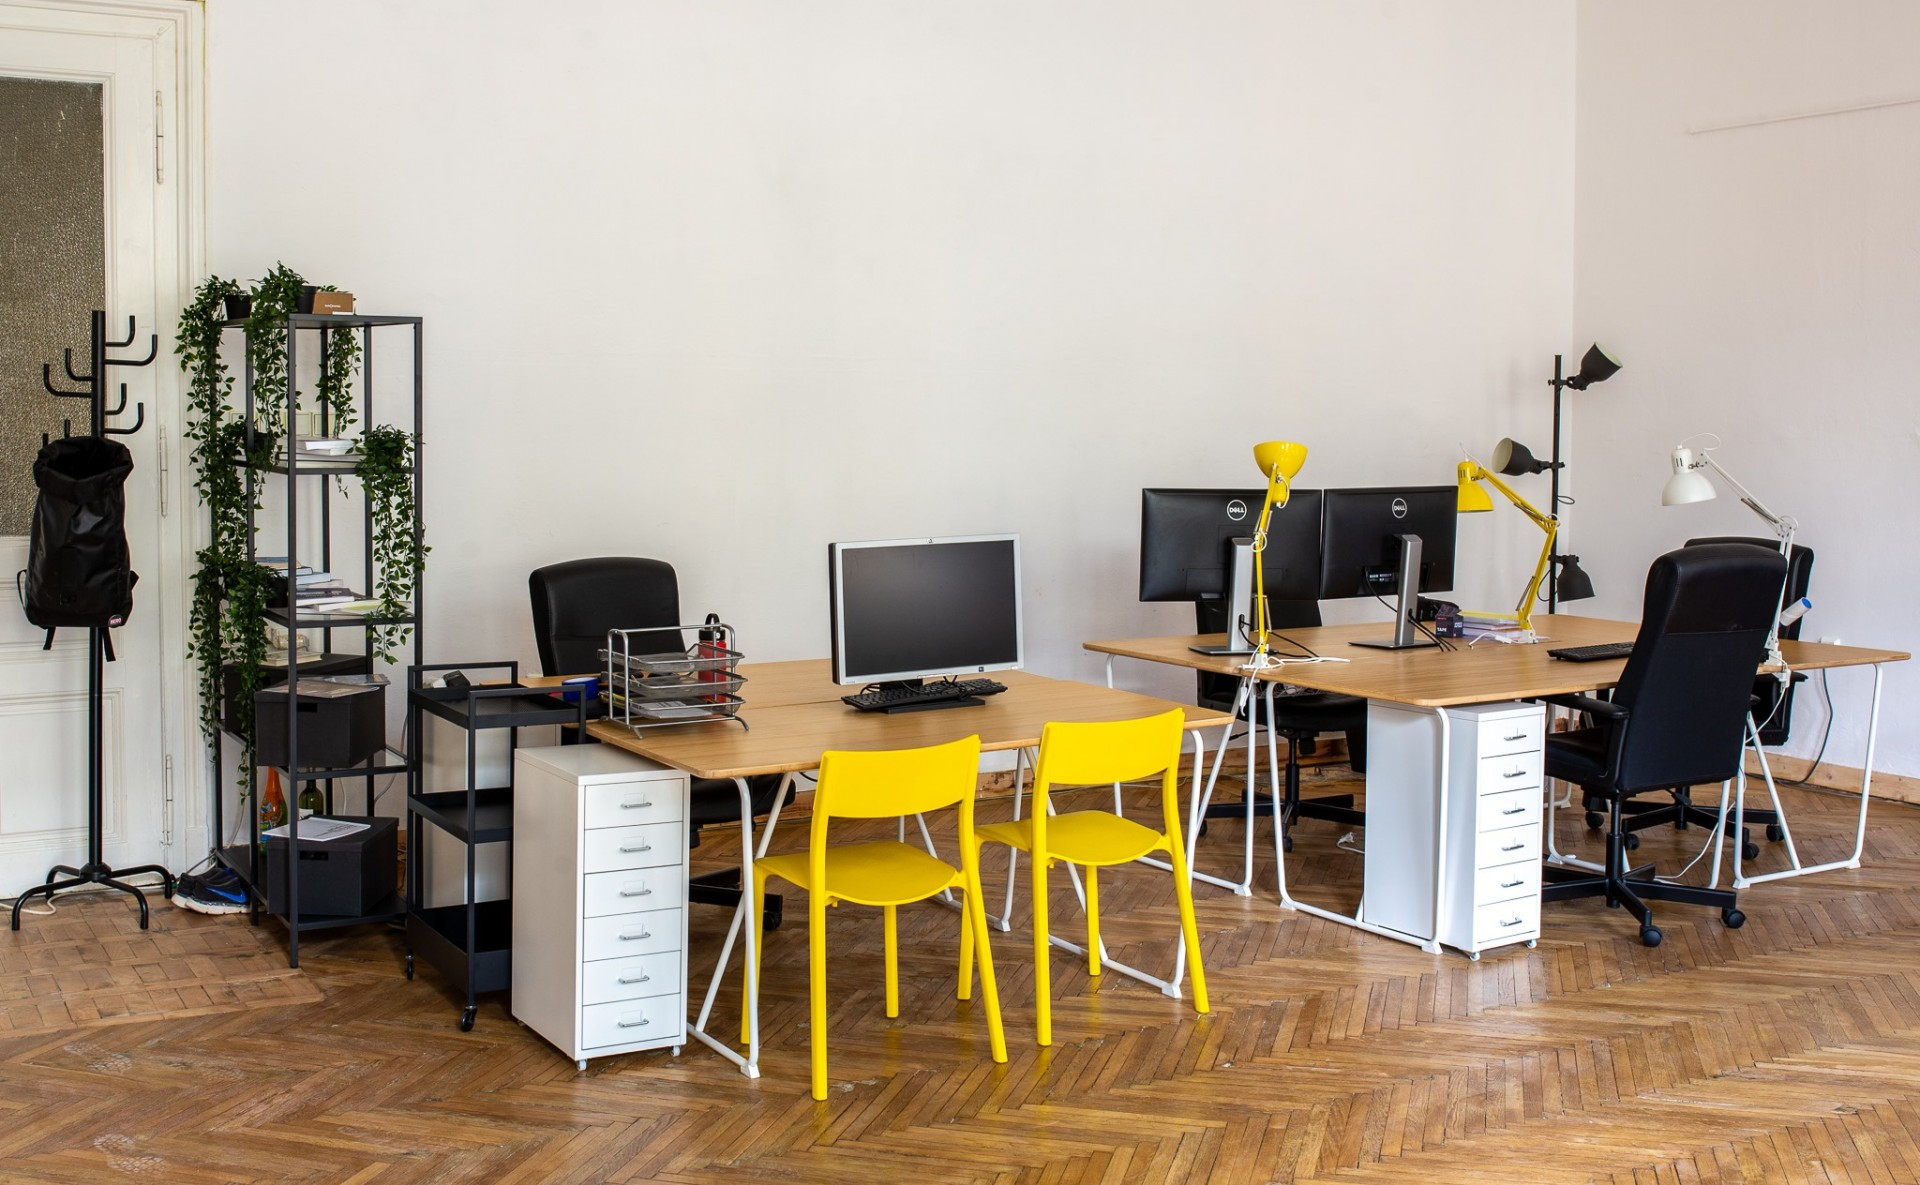 Offices in Brno